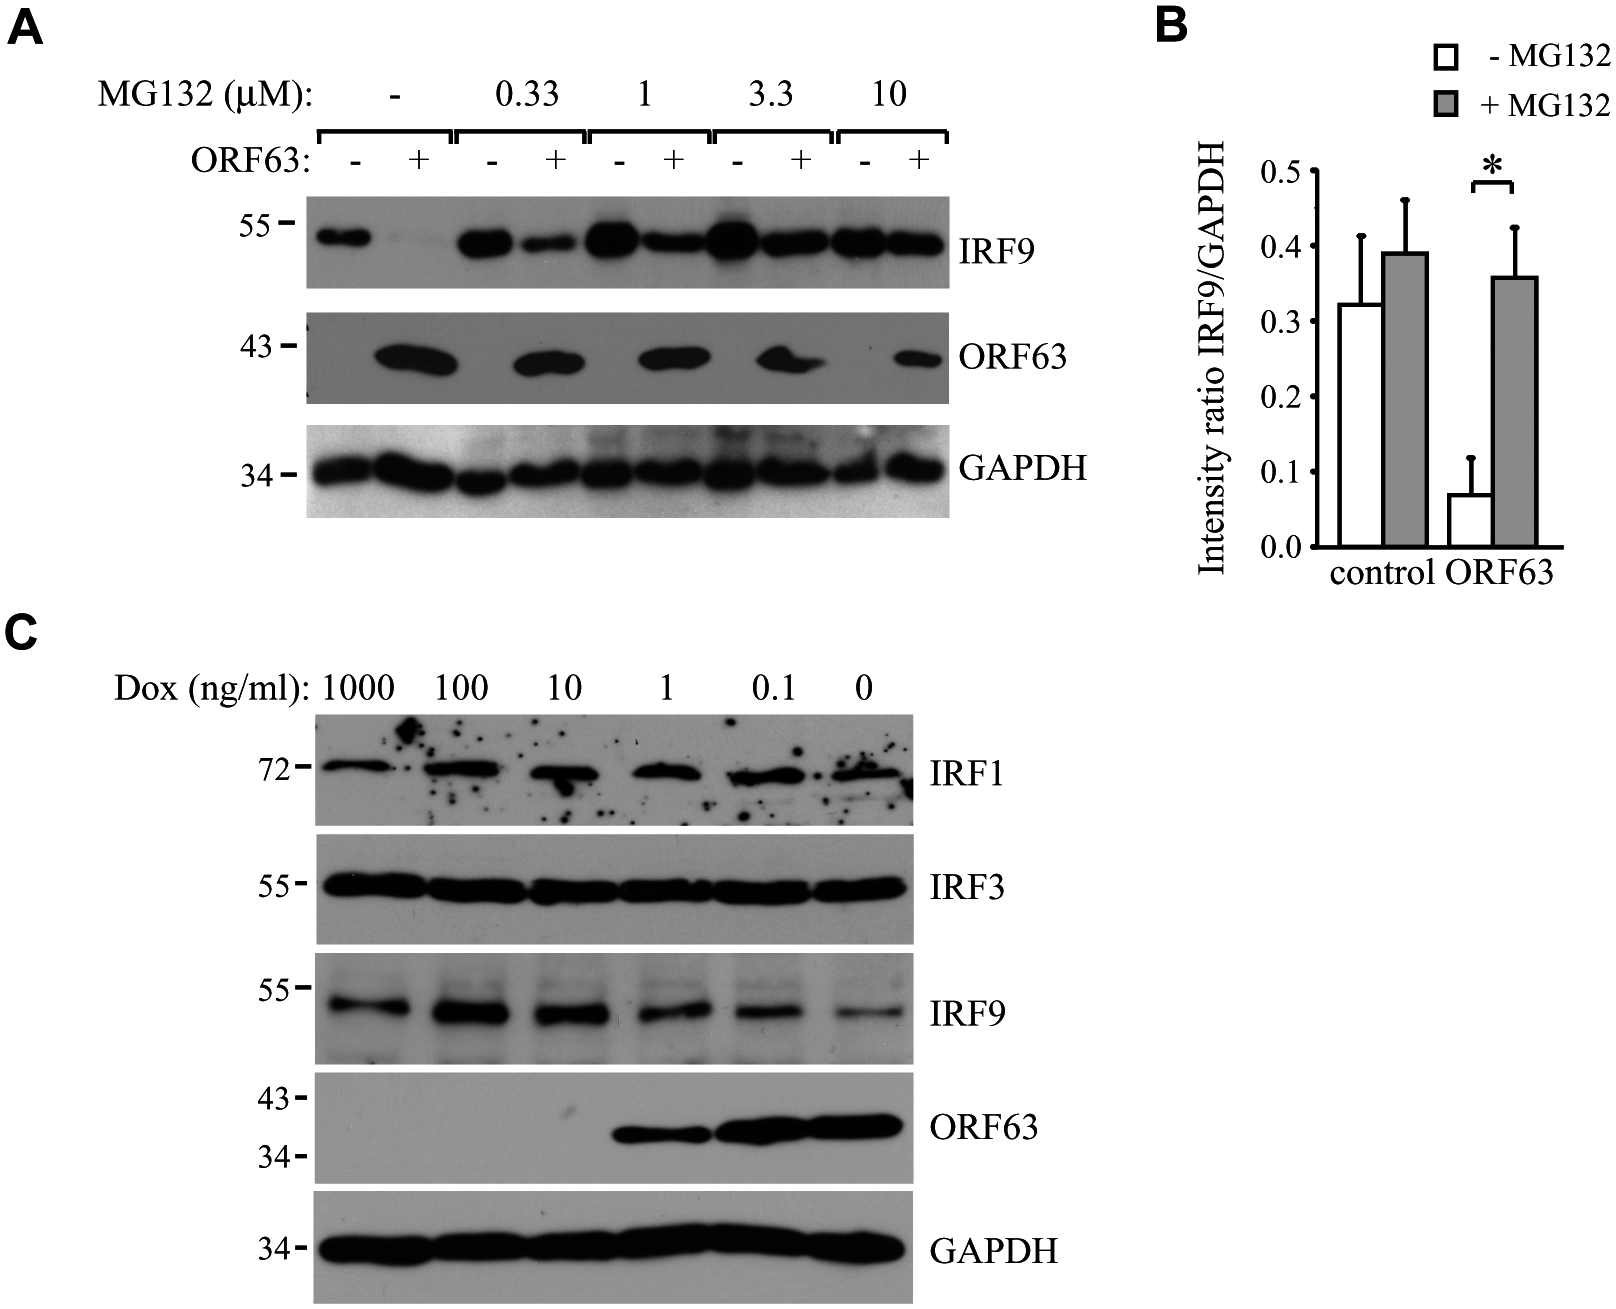 ORF63 induces proteasomal-degradation of IRF9, but does not affect IRF1 or IRF3.